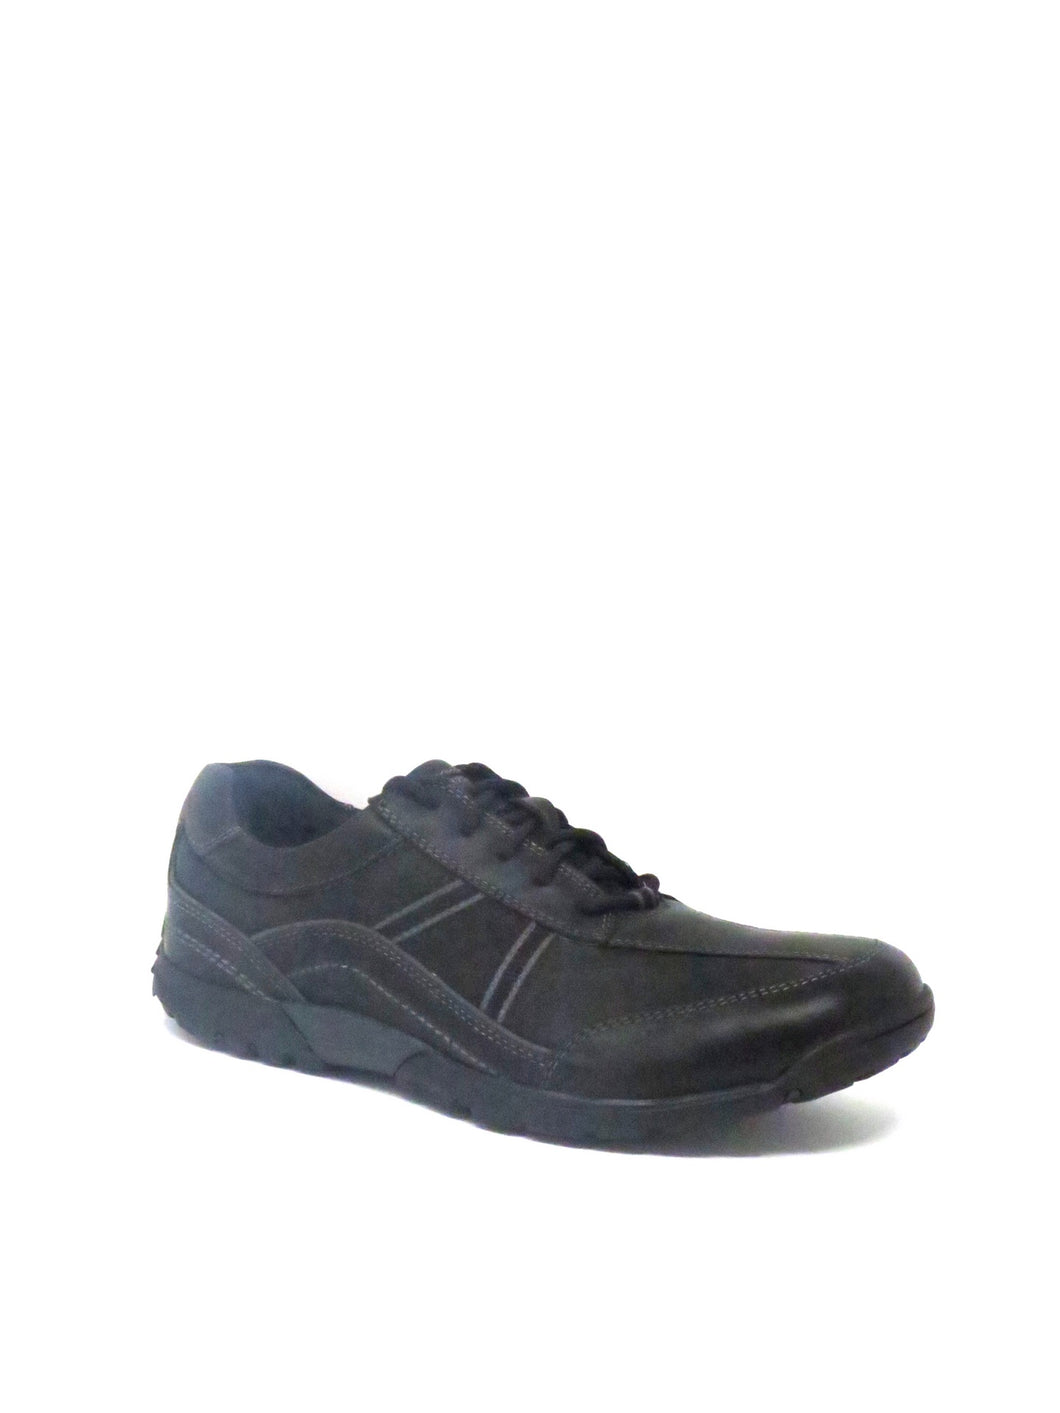 Rockport | K58502 | City Trails 2 Stripe Lace Up | Black